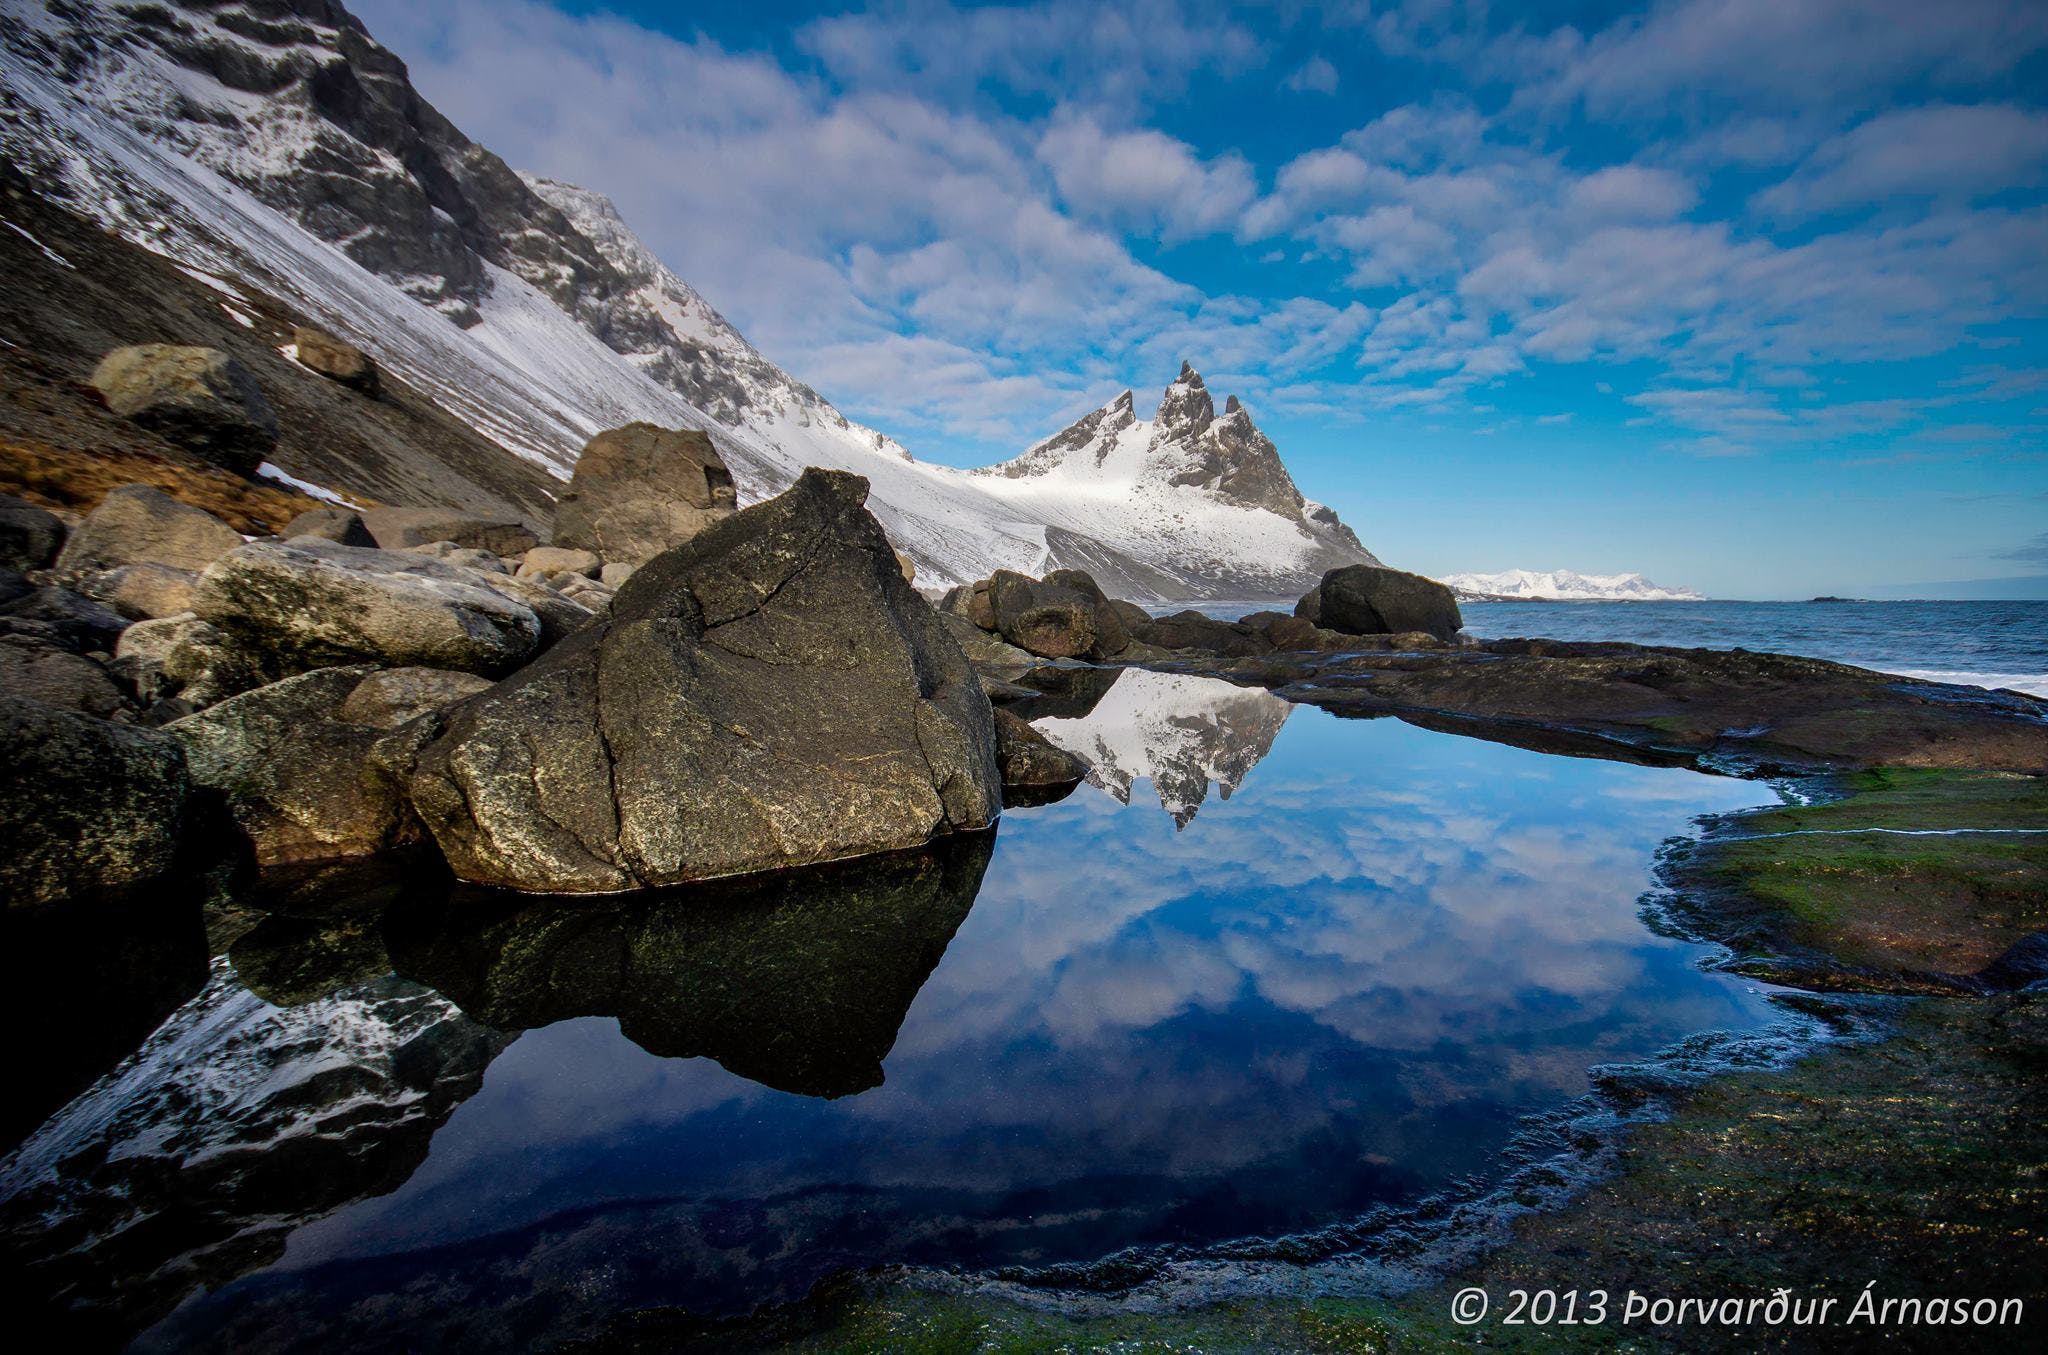 Brunnhorn mountain by Thorri